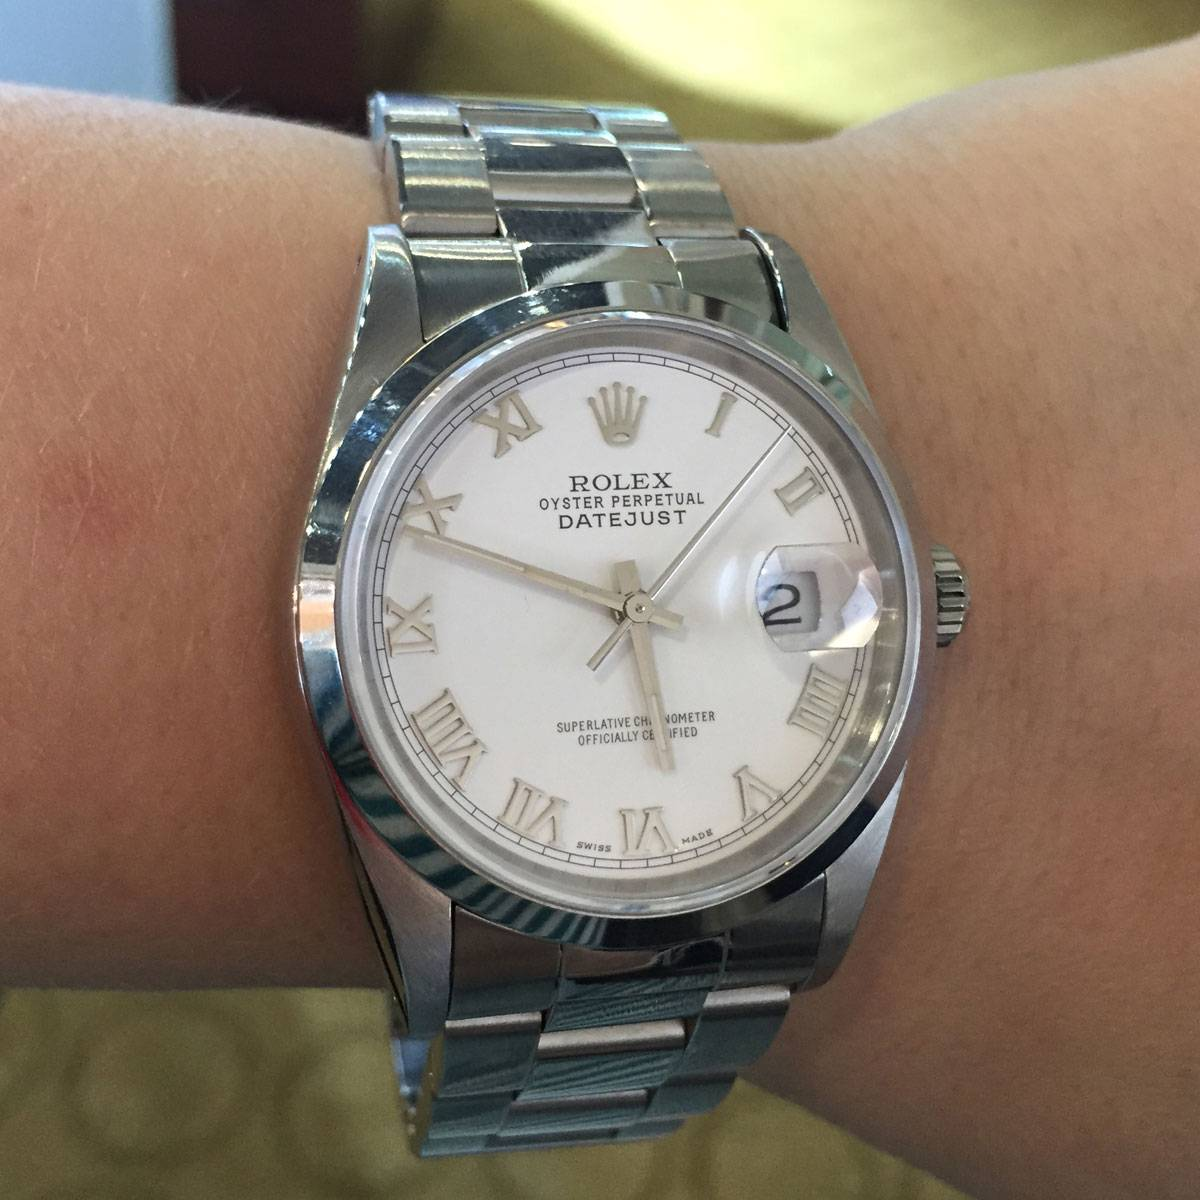 Rolex 16200 Datejust White Roman Dial Stainless Steel Watch